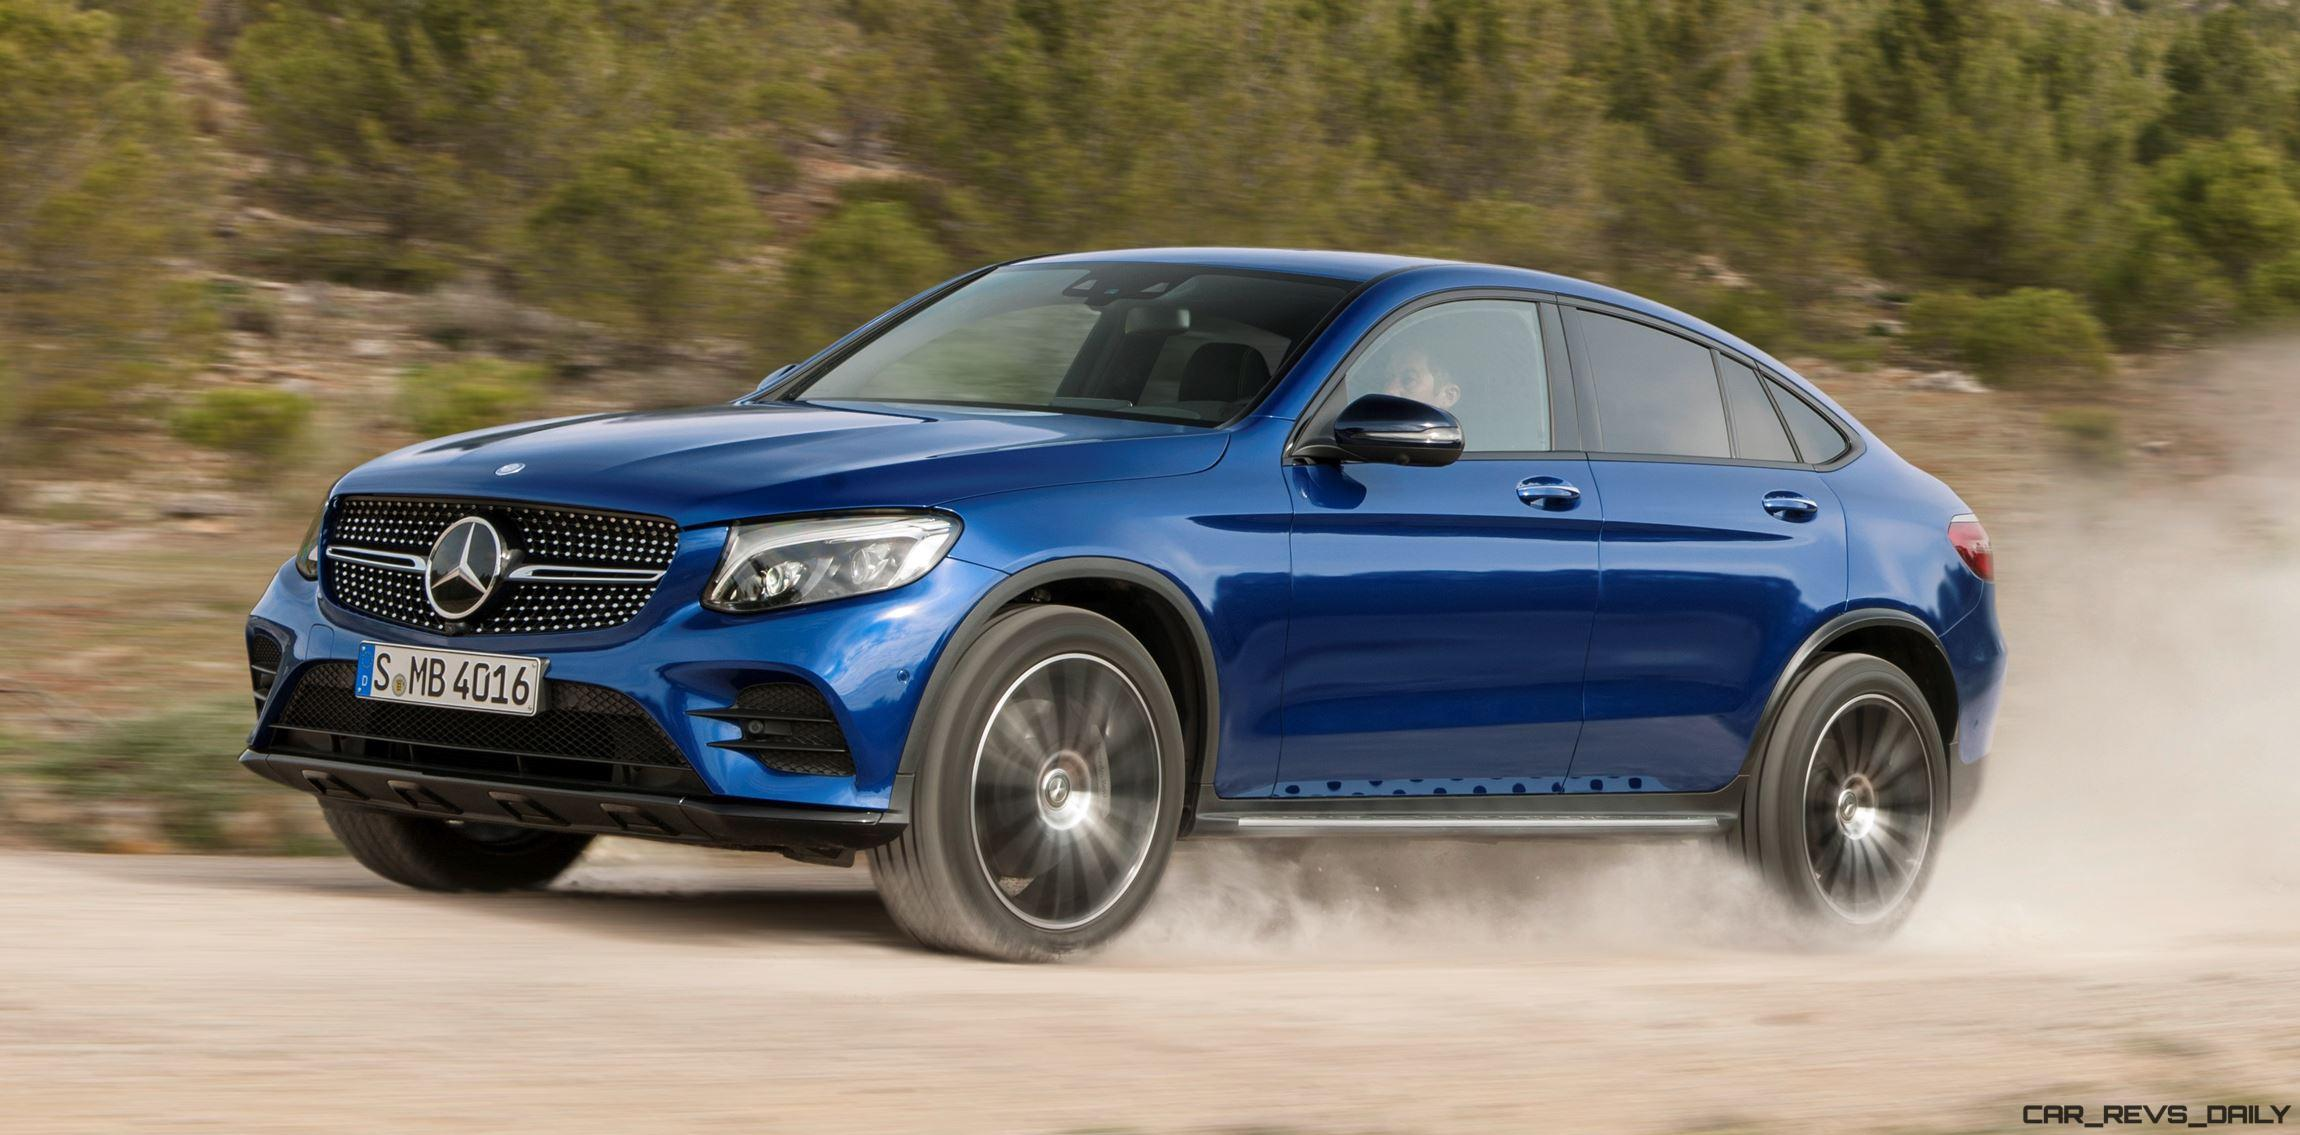 http://www.car-revs-daily.com/wp-content/uploads/2016/04/2017-Mercedes-Benz-GLC-Coupe-14.jpg